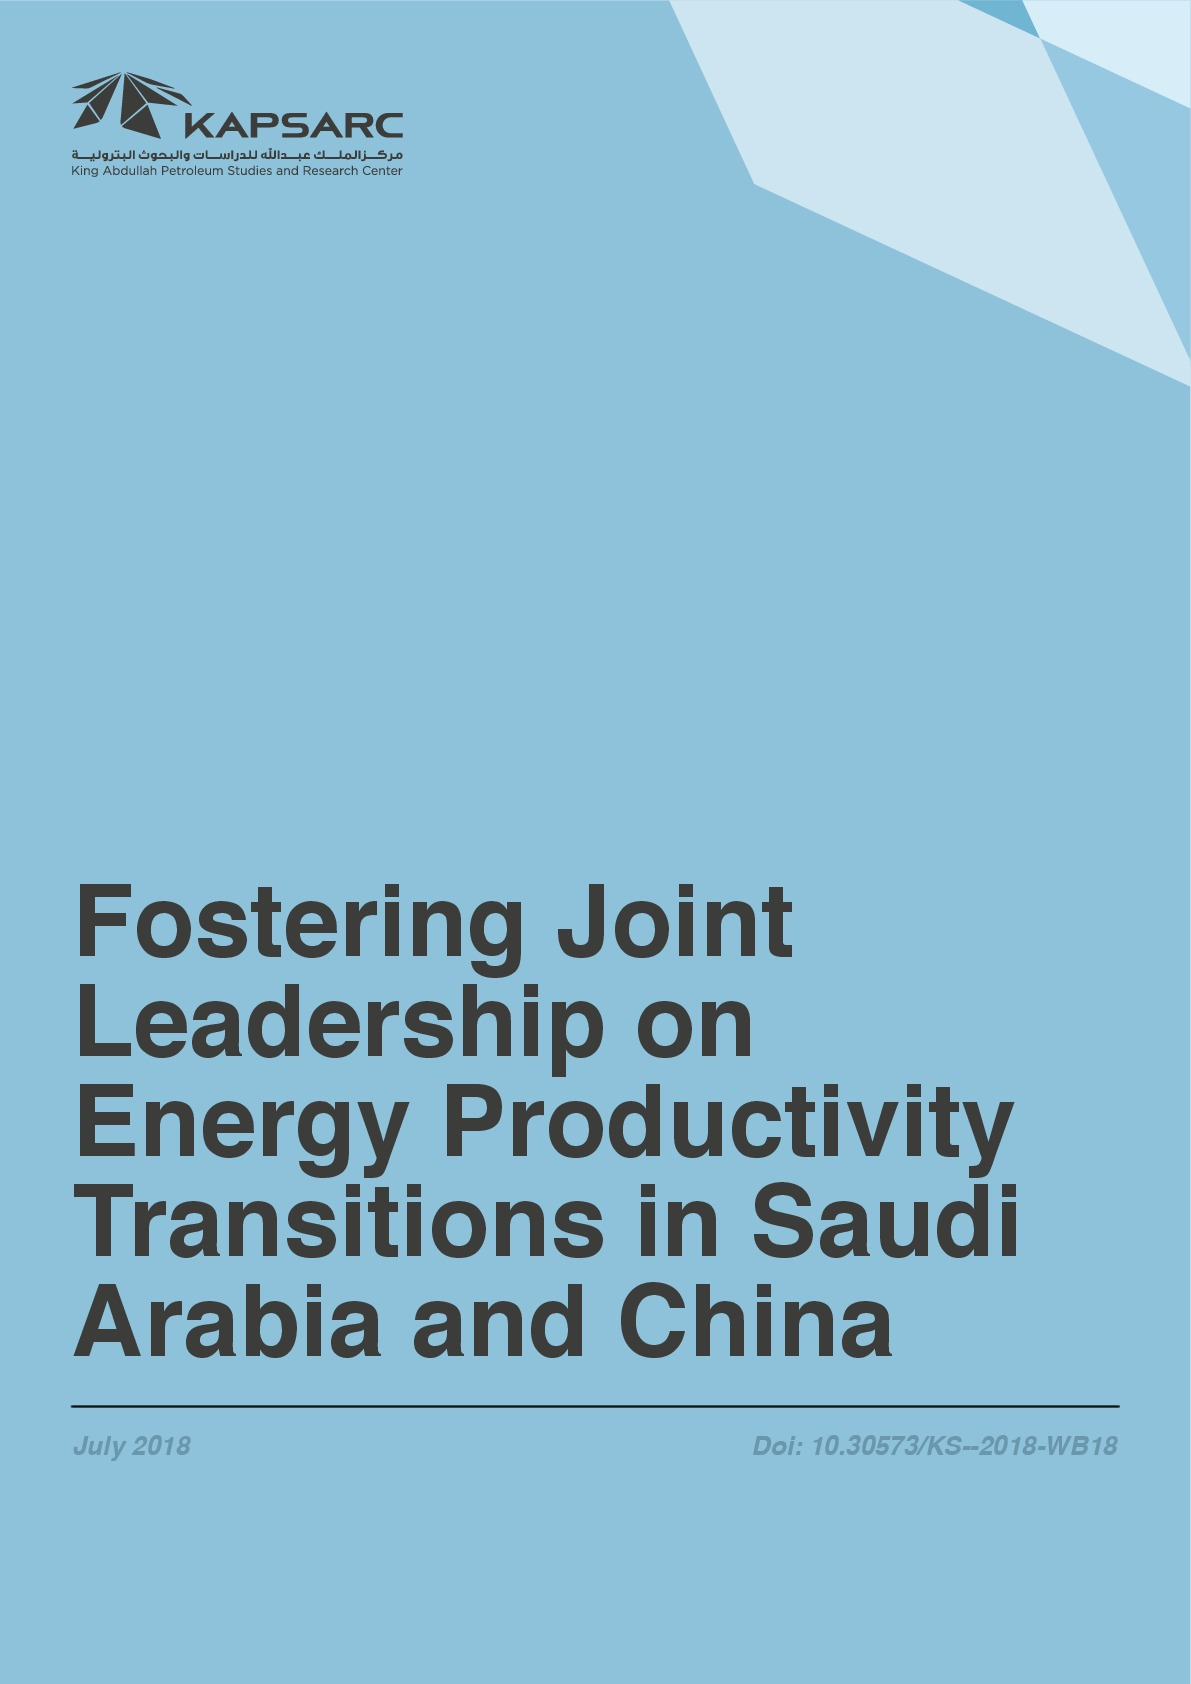 Fostering Joint Leadership on Energy Productivity Transitions in Saudi Arabia and China